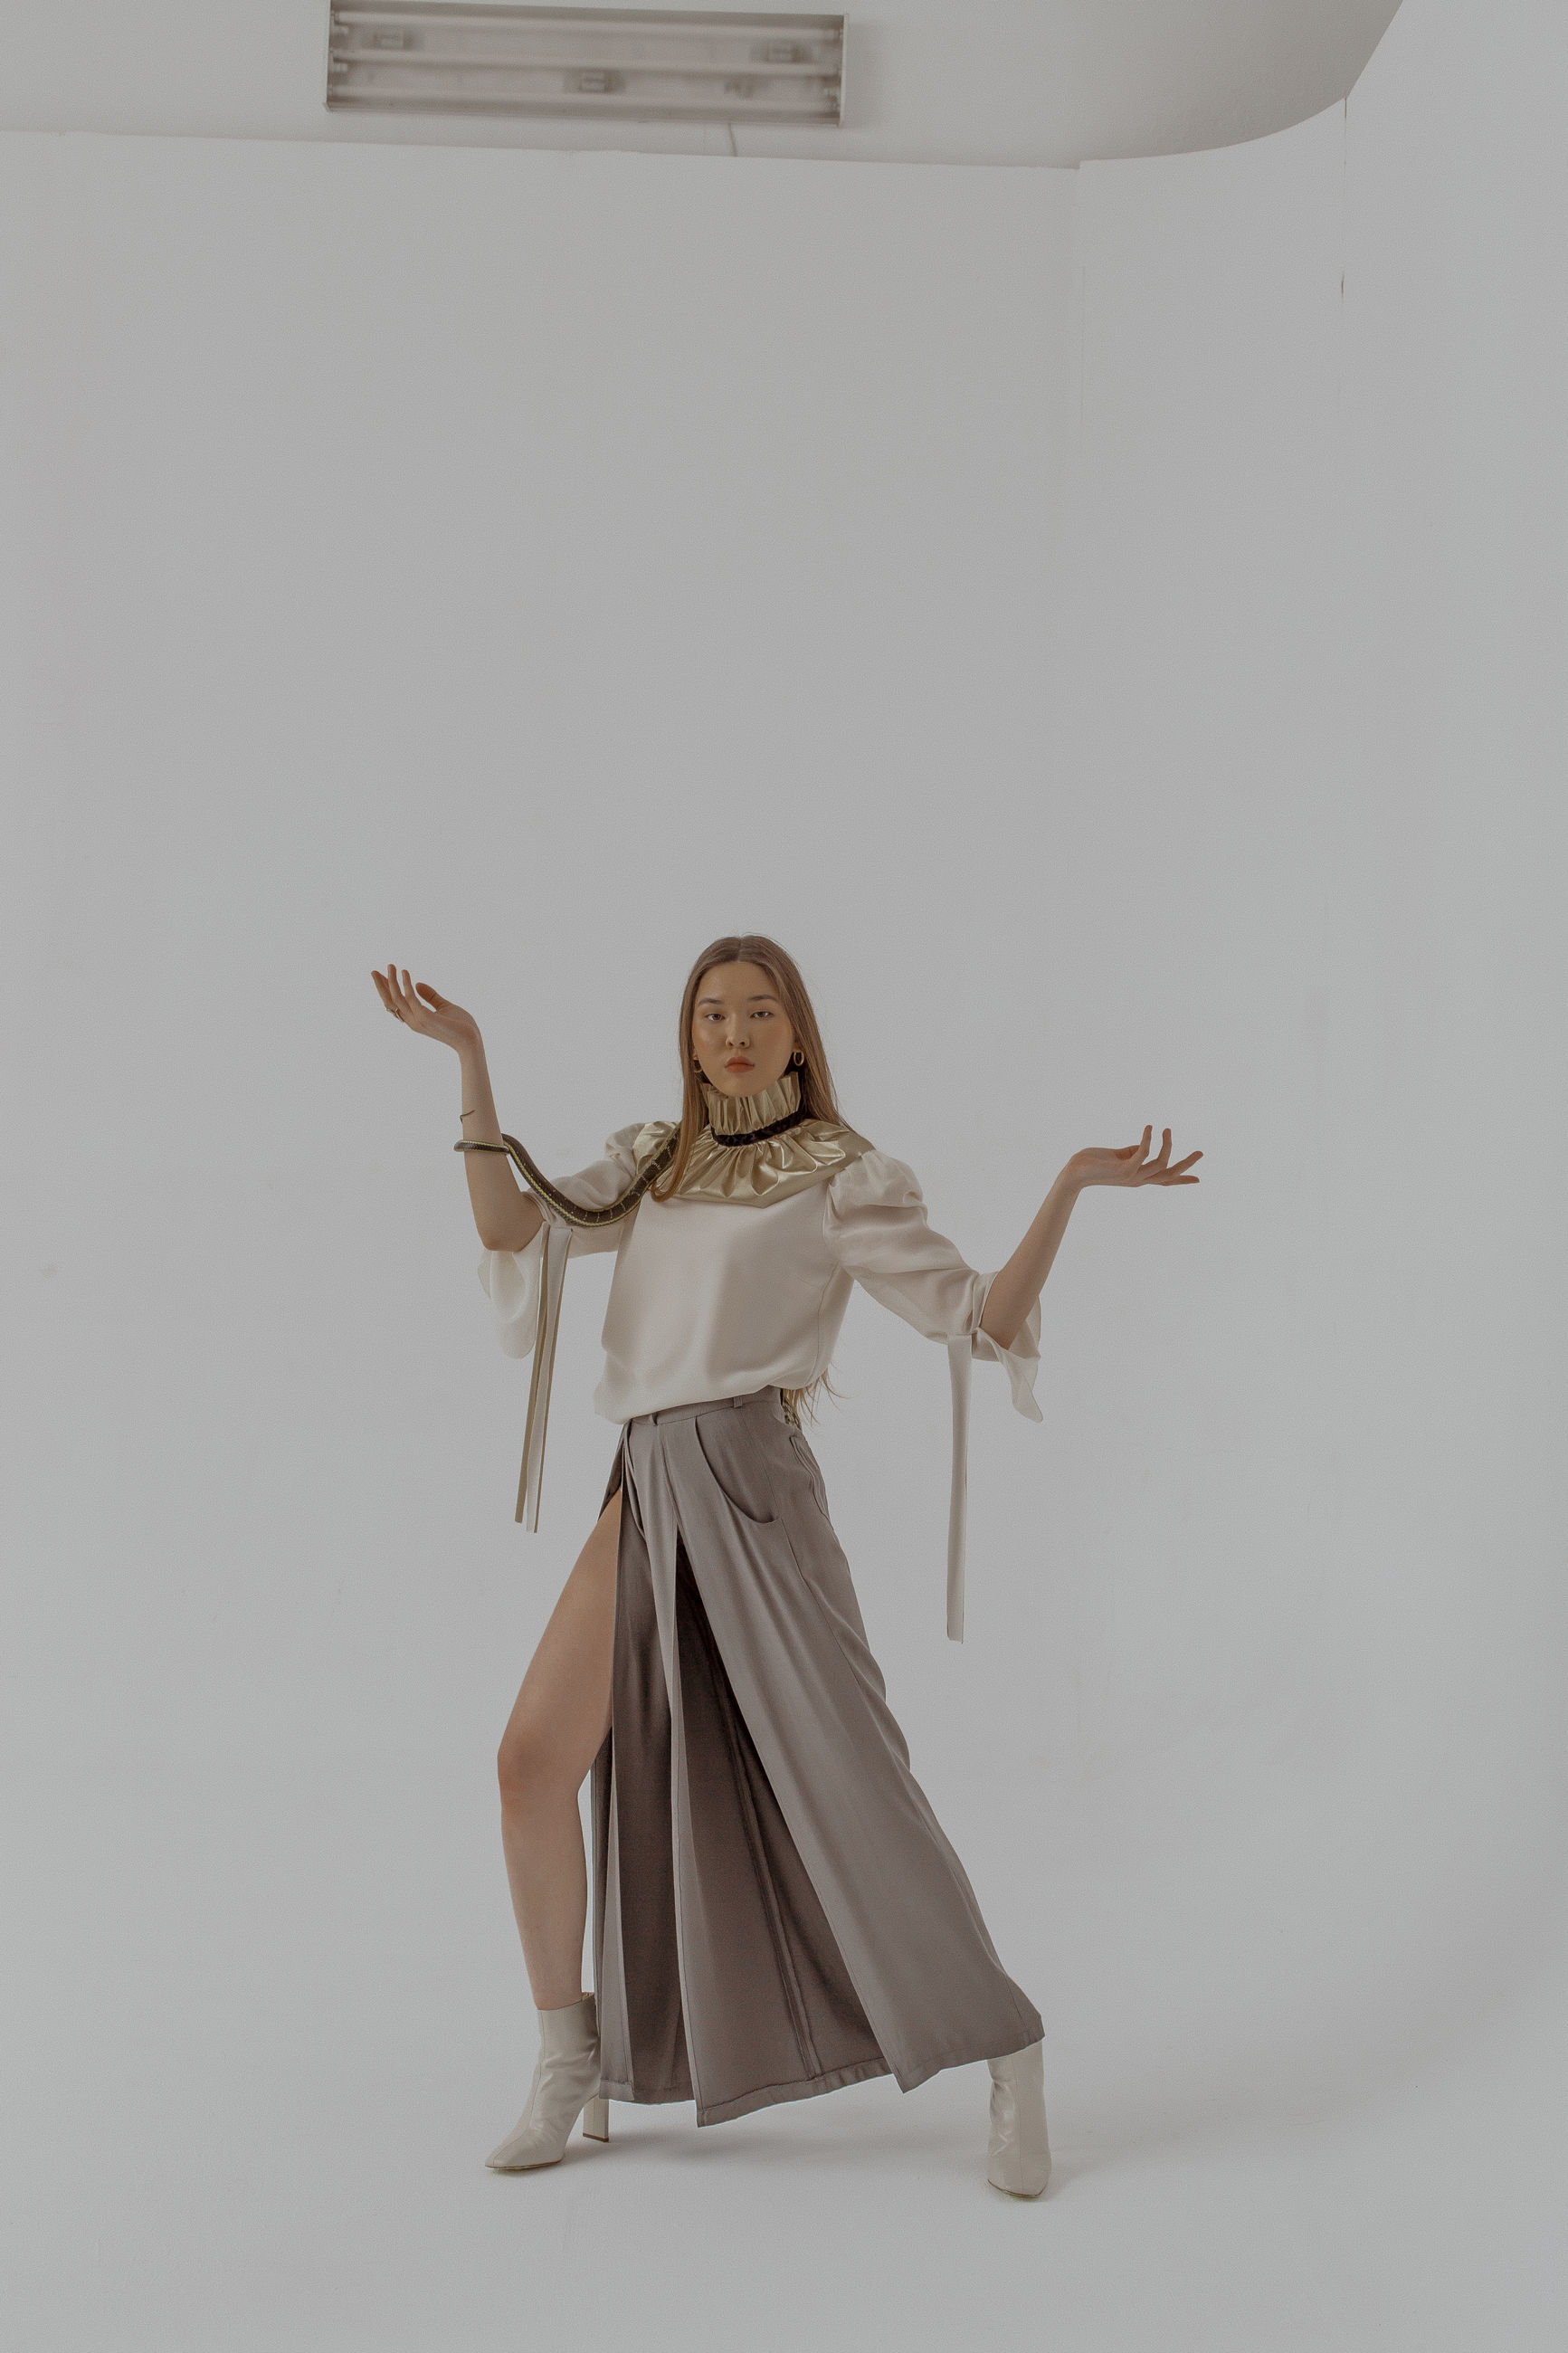 one person, indoors, human arm, full length, studio shot, front view, standing, young adult, dancing, lifestyles, women, beauty, cut out, looking, portrait, smiling, looking at camera, limb, beautiful woman, arms raised